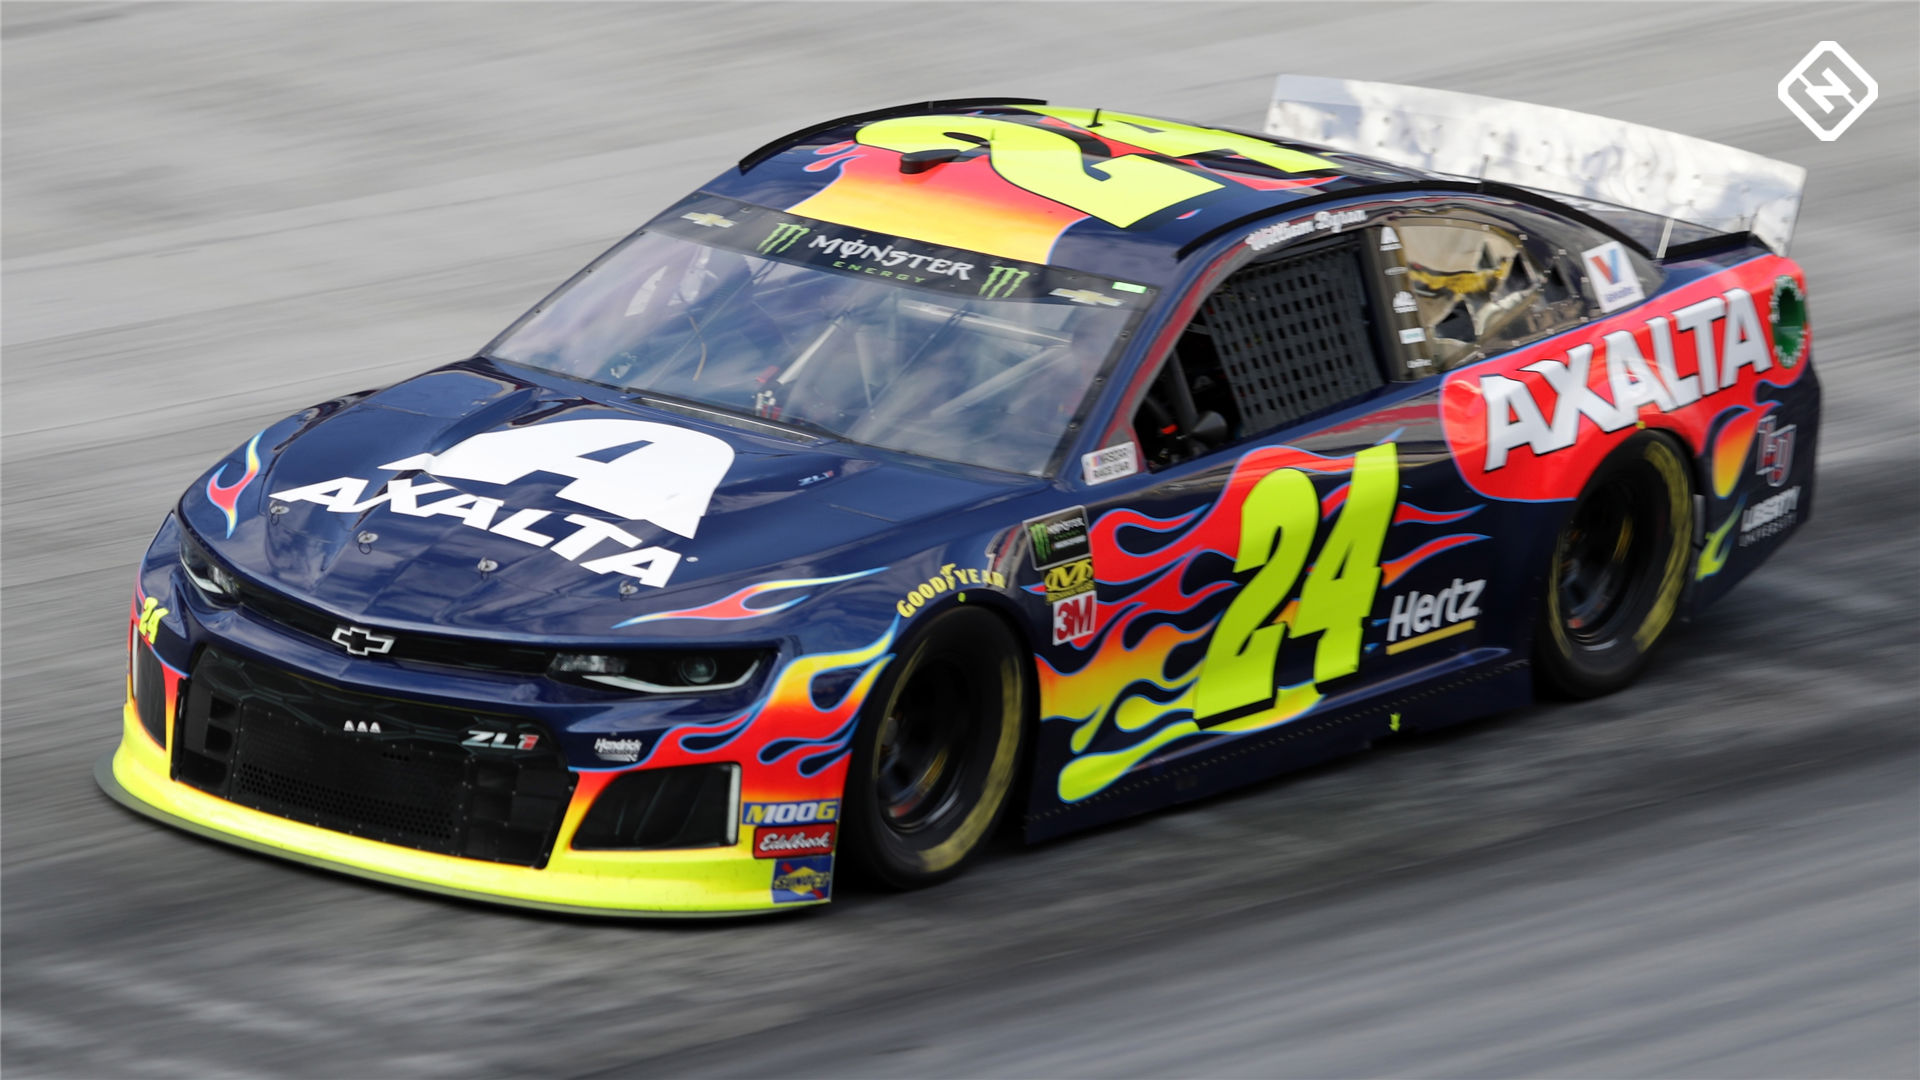 Vehicle Manufacturers In Nascar Nascar S 2019 Cup Cars Are The Most Badass Looking Cars In